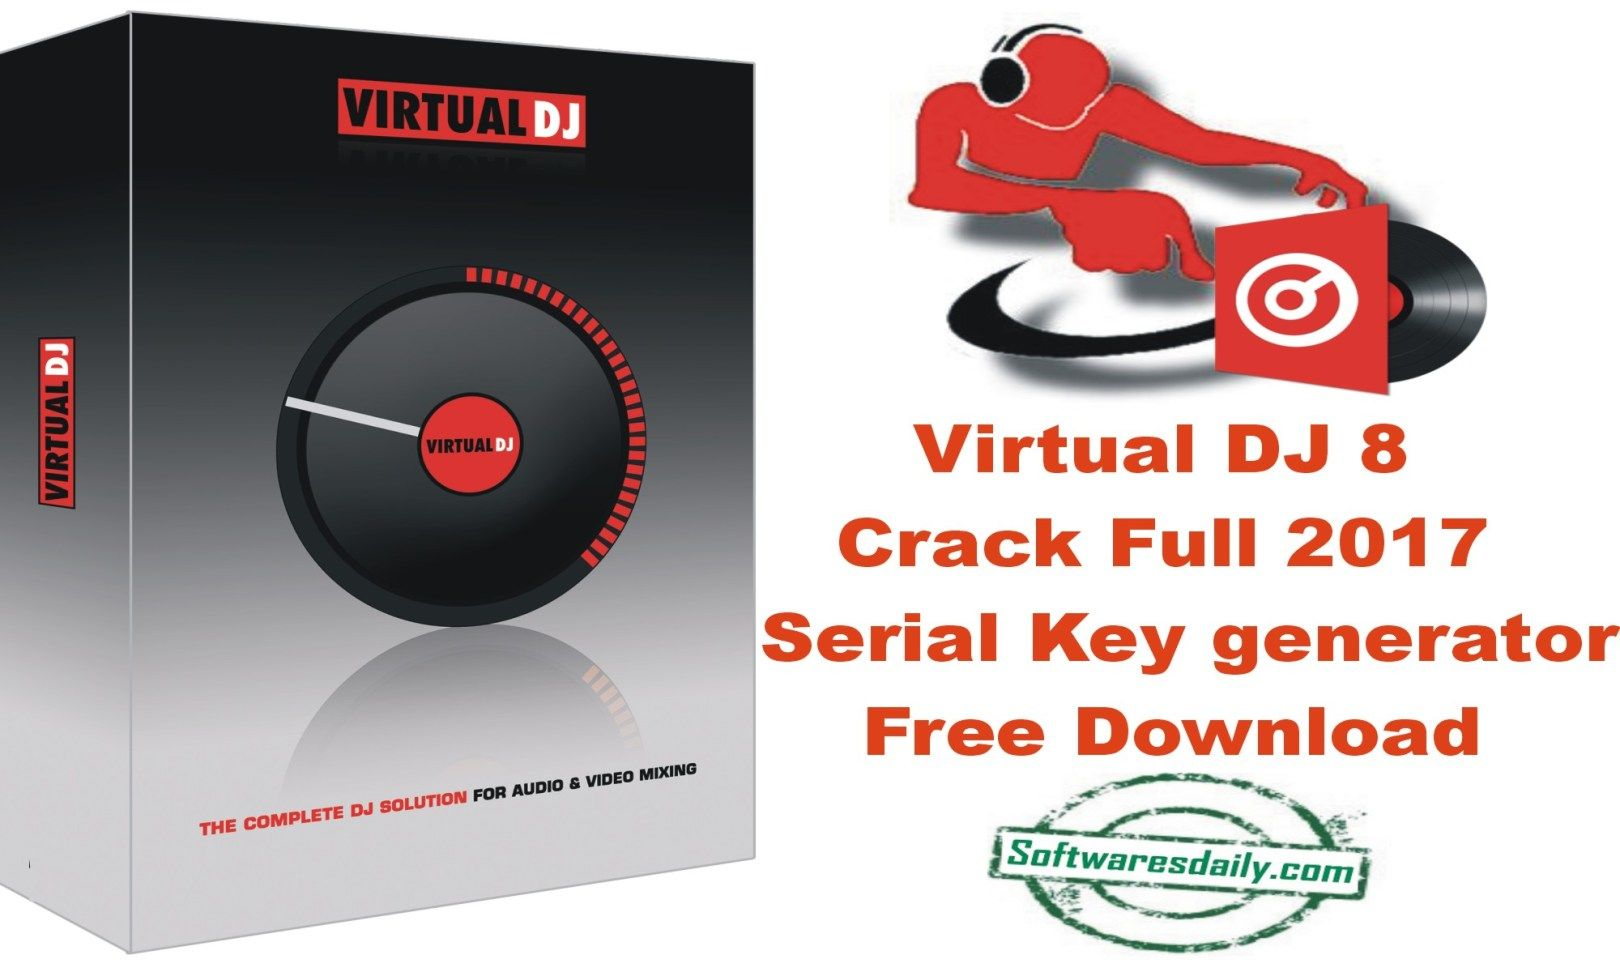 Virtual DJ 8 Crack Full 2017 Serial Key generator Free Download